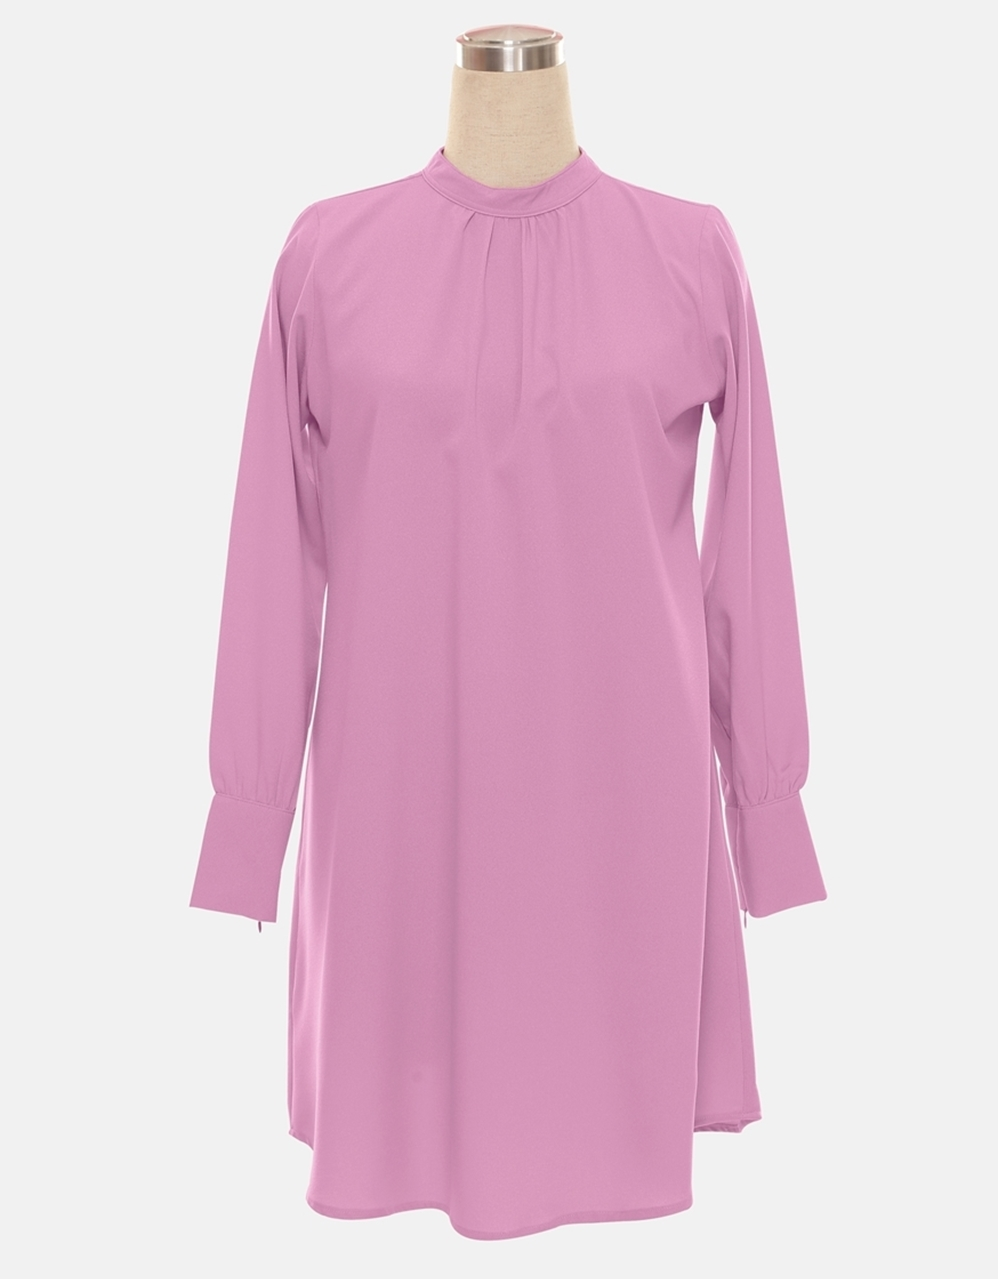 Picture of Aina Tunic Blouse In PEONY [CODE 033 PRE-ORDER]